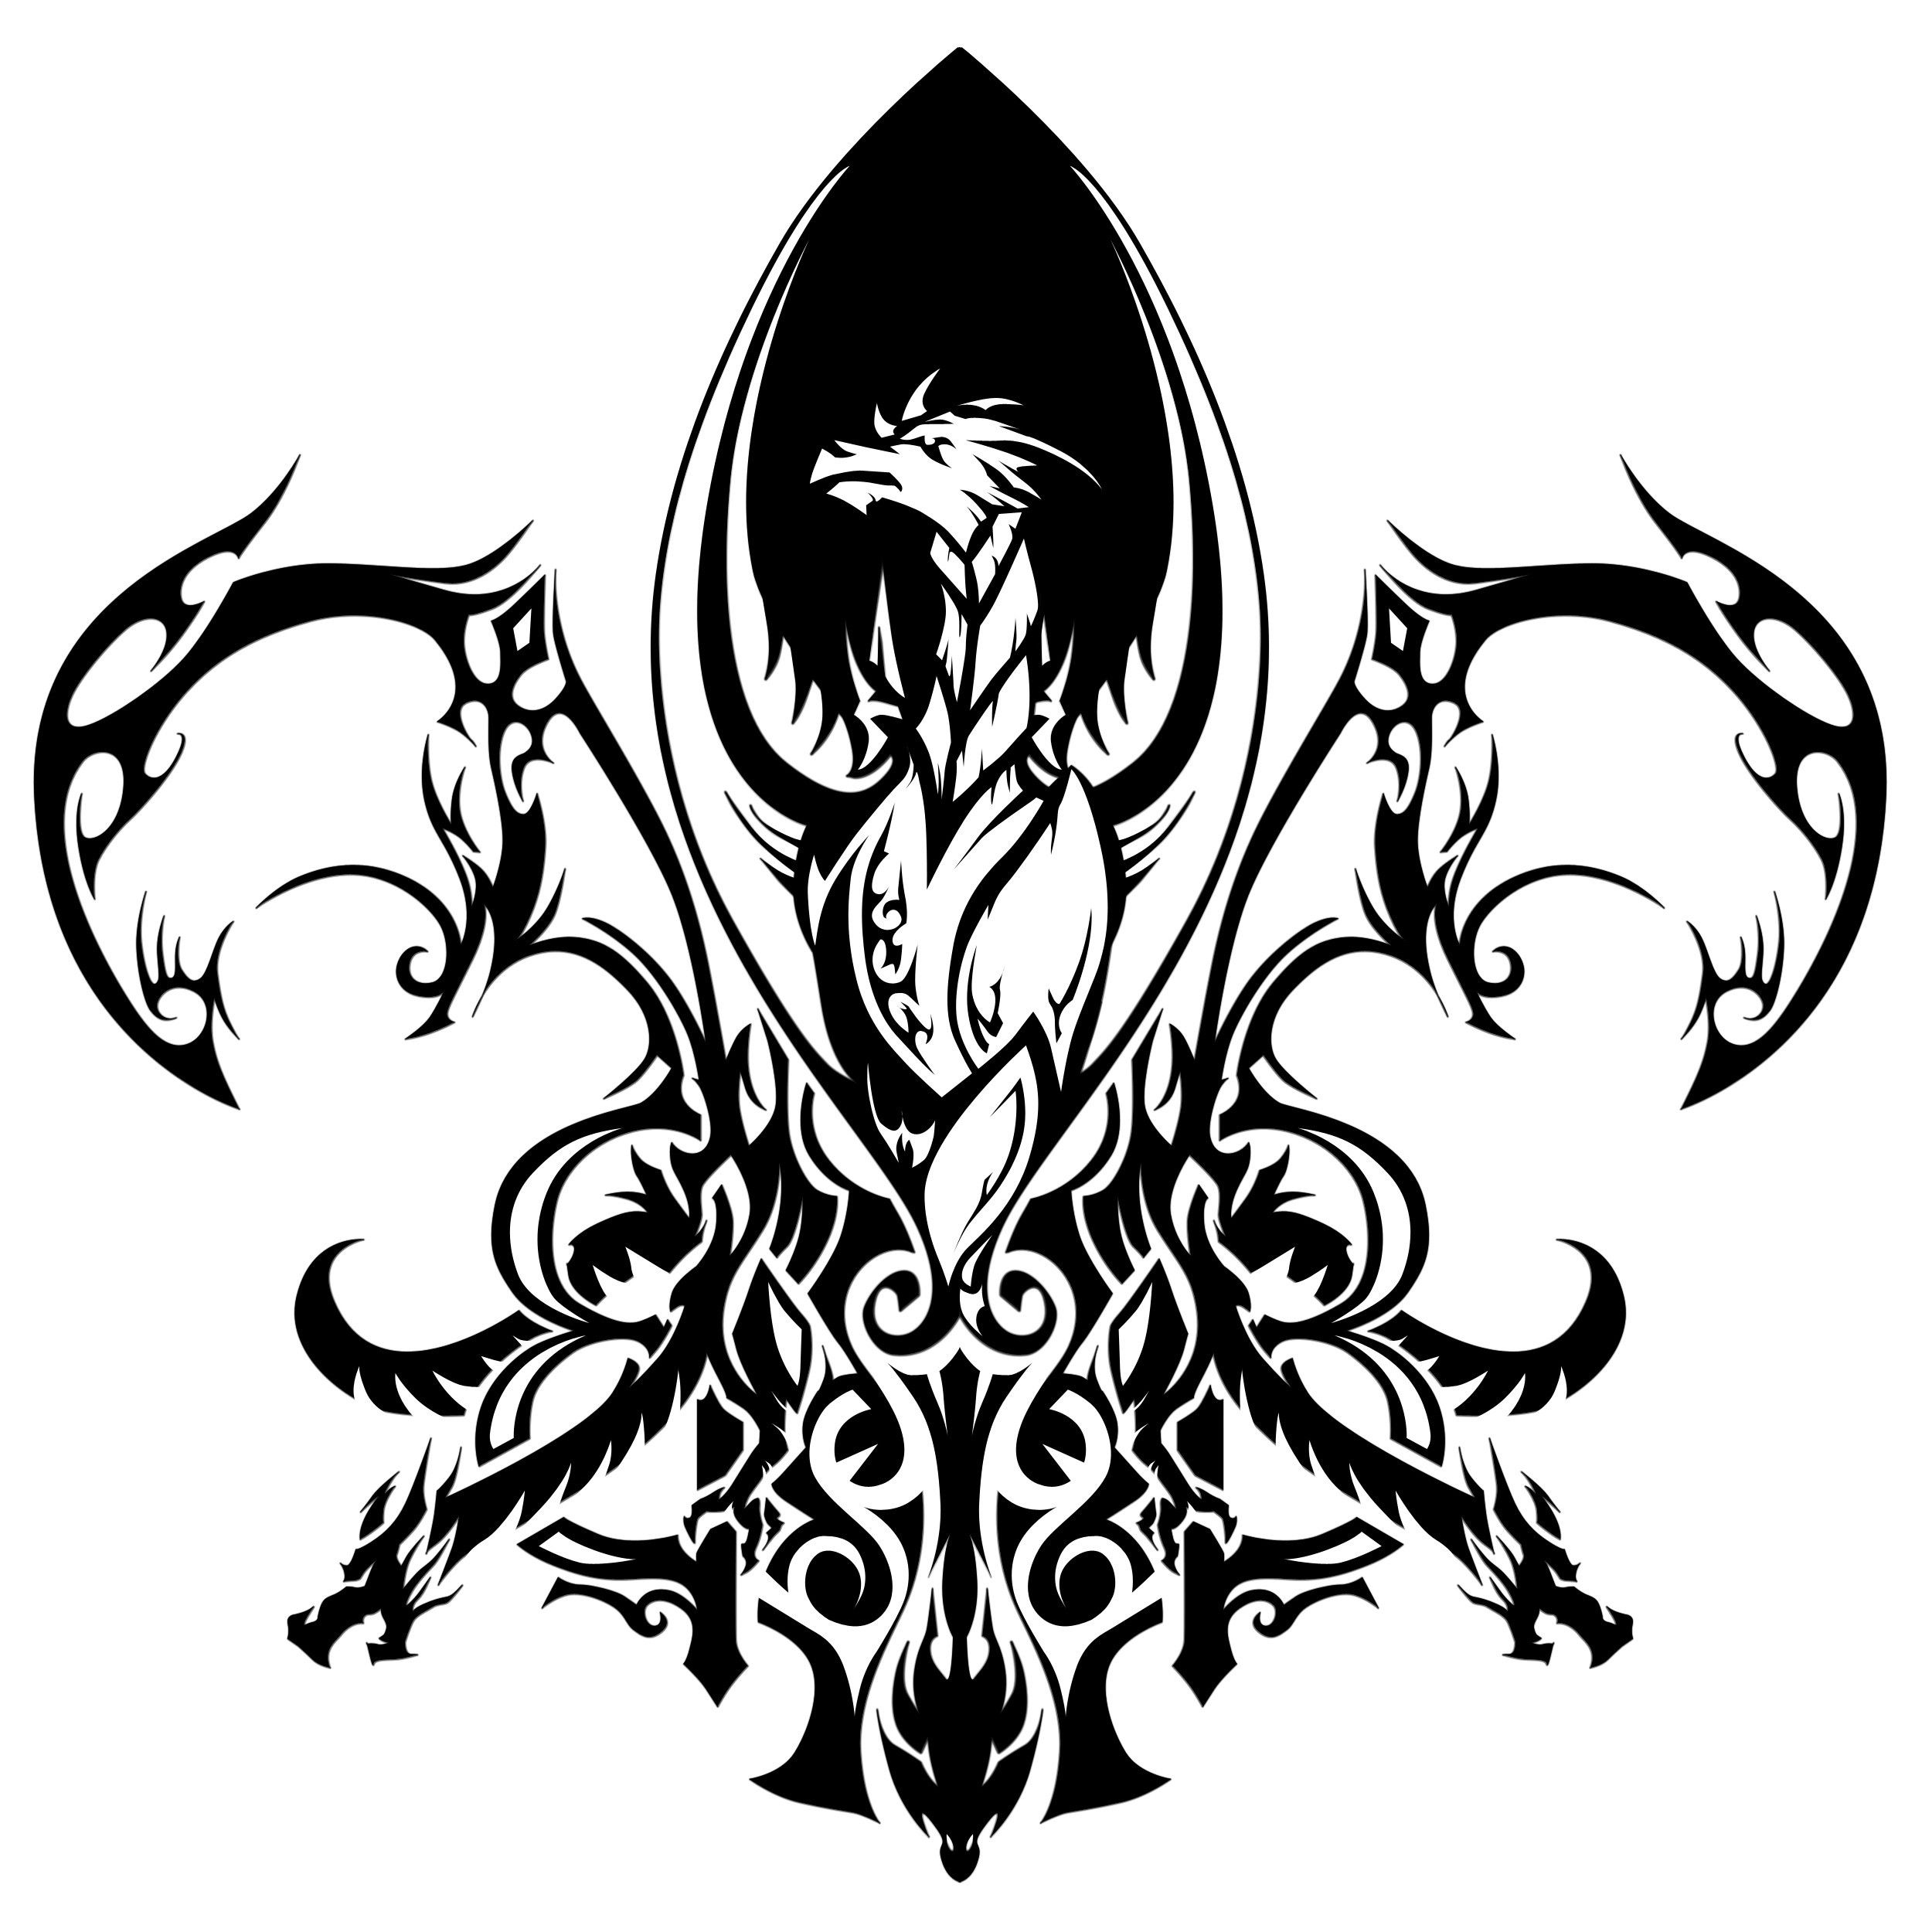 fleur de lis tattoos tattoes idea 2015 2016 the. Black Bedroom Furniture Sets. Home Design Ideas